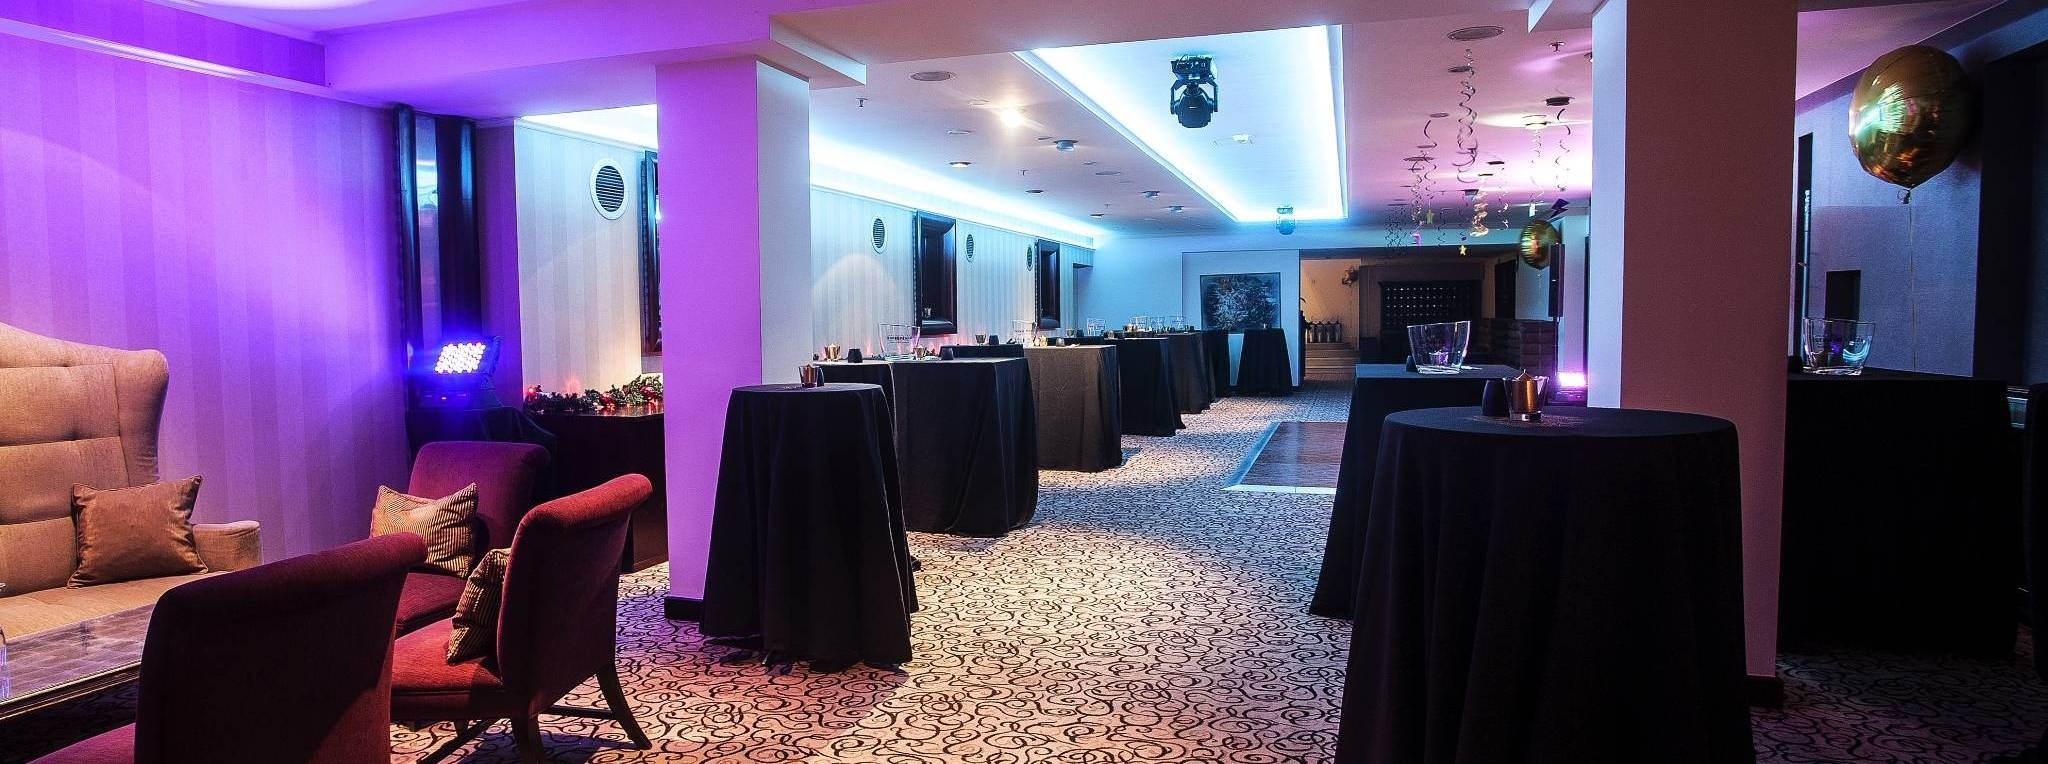 Esplanade Zagreb Hotel The Club